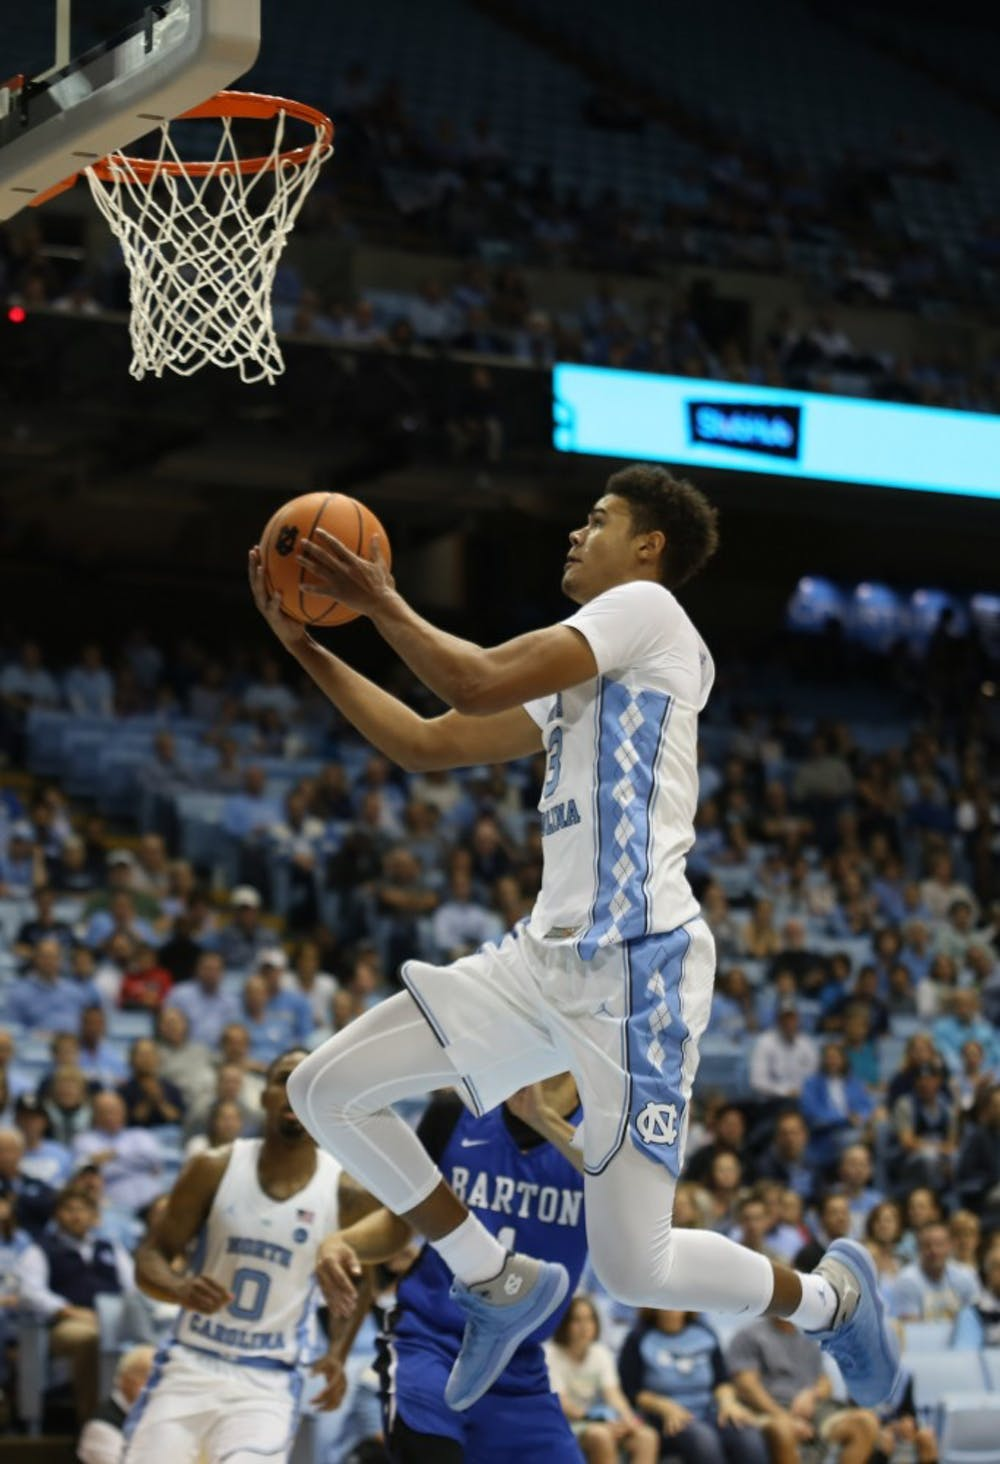 Cameron Johnson tears meniscus in left knee, undergoing surgery today